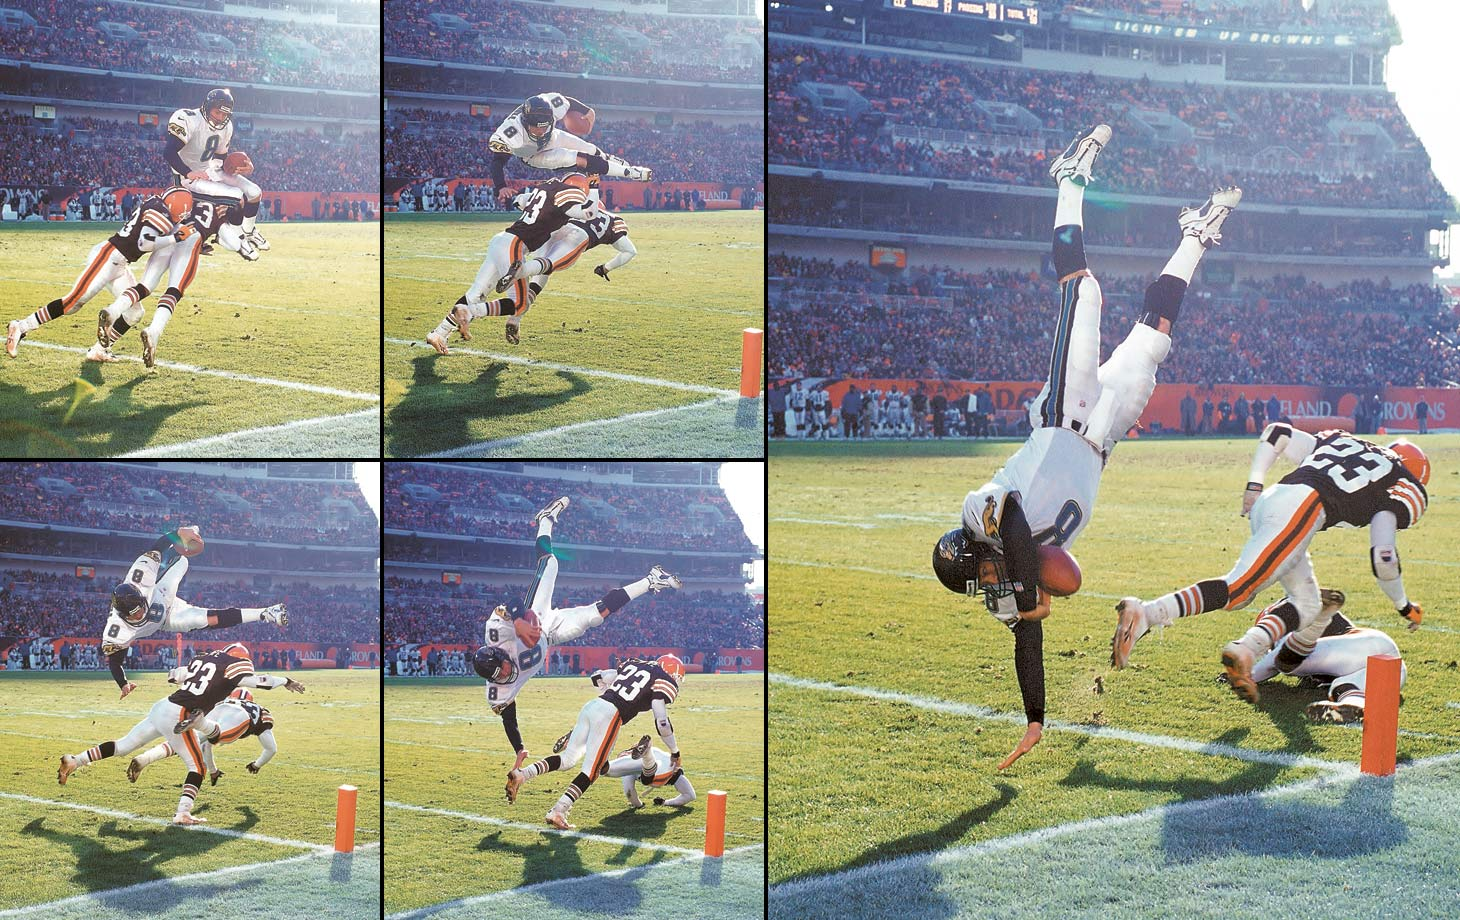 Jaguars quarterback Mark Brunell went up and over two Browns to reach the end zone in Cleveland.